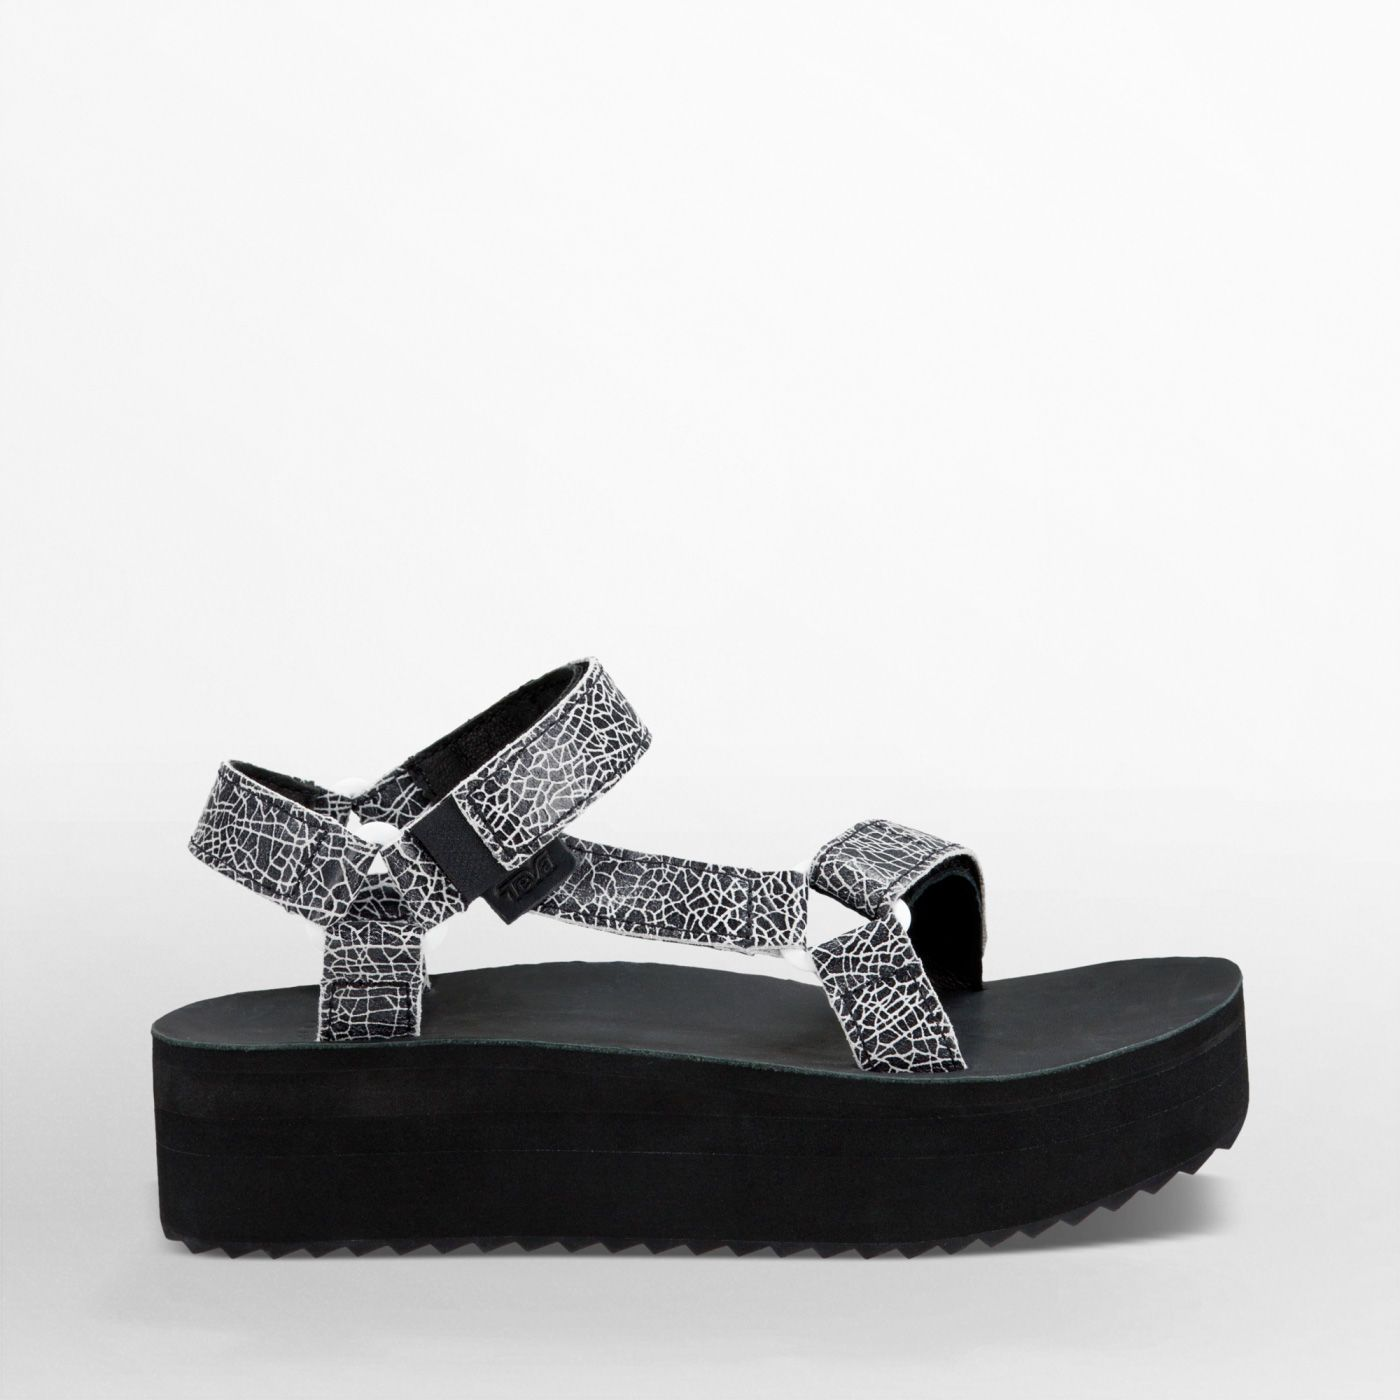 4e0ad530e70 Shop our entire Collection of sandals for women including the Flatform  Universal Crackle at Teva.com